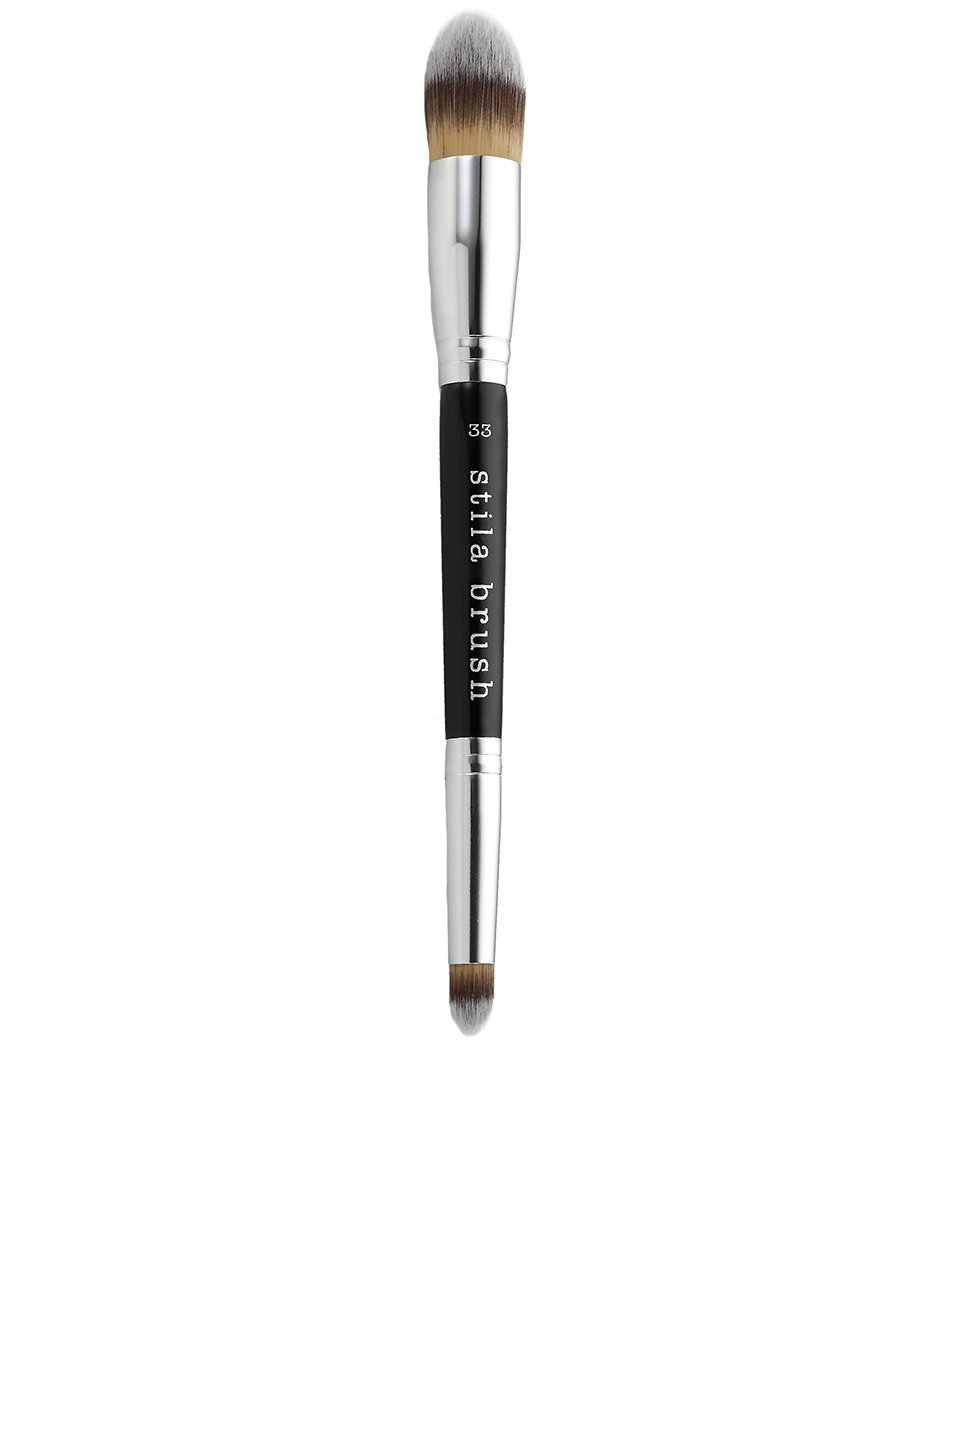 Stila #33 One Step Complexion Brush in